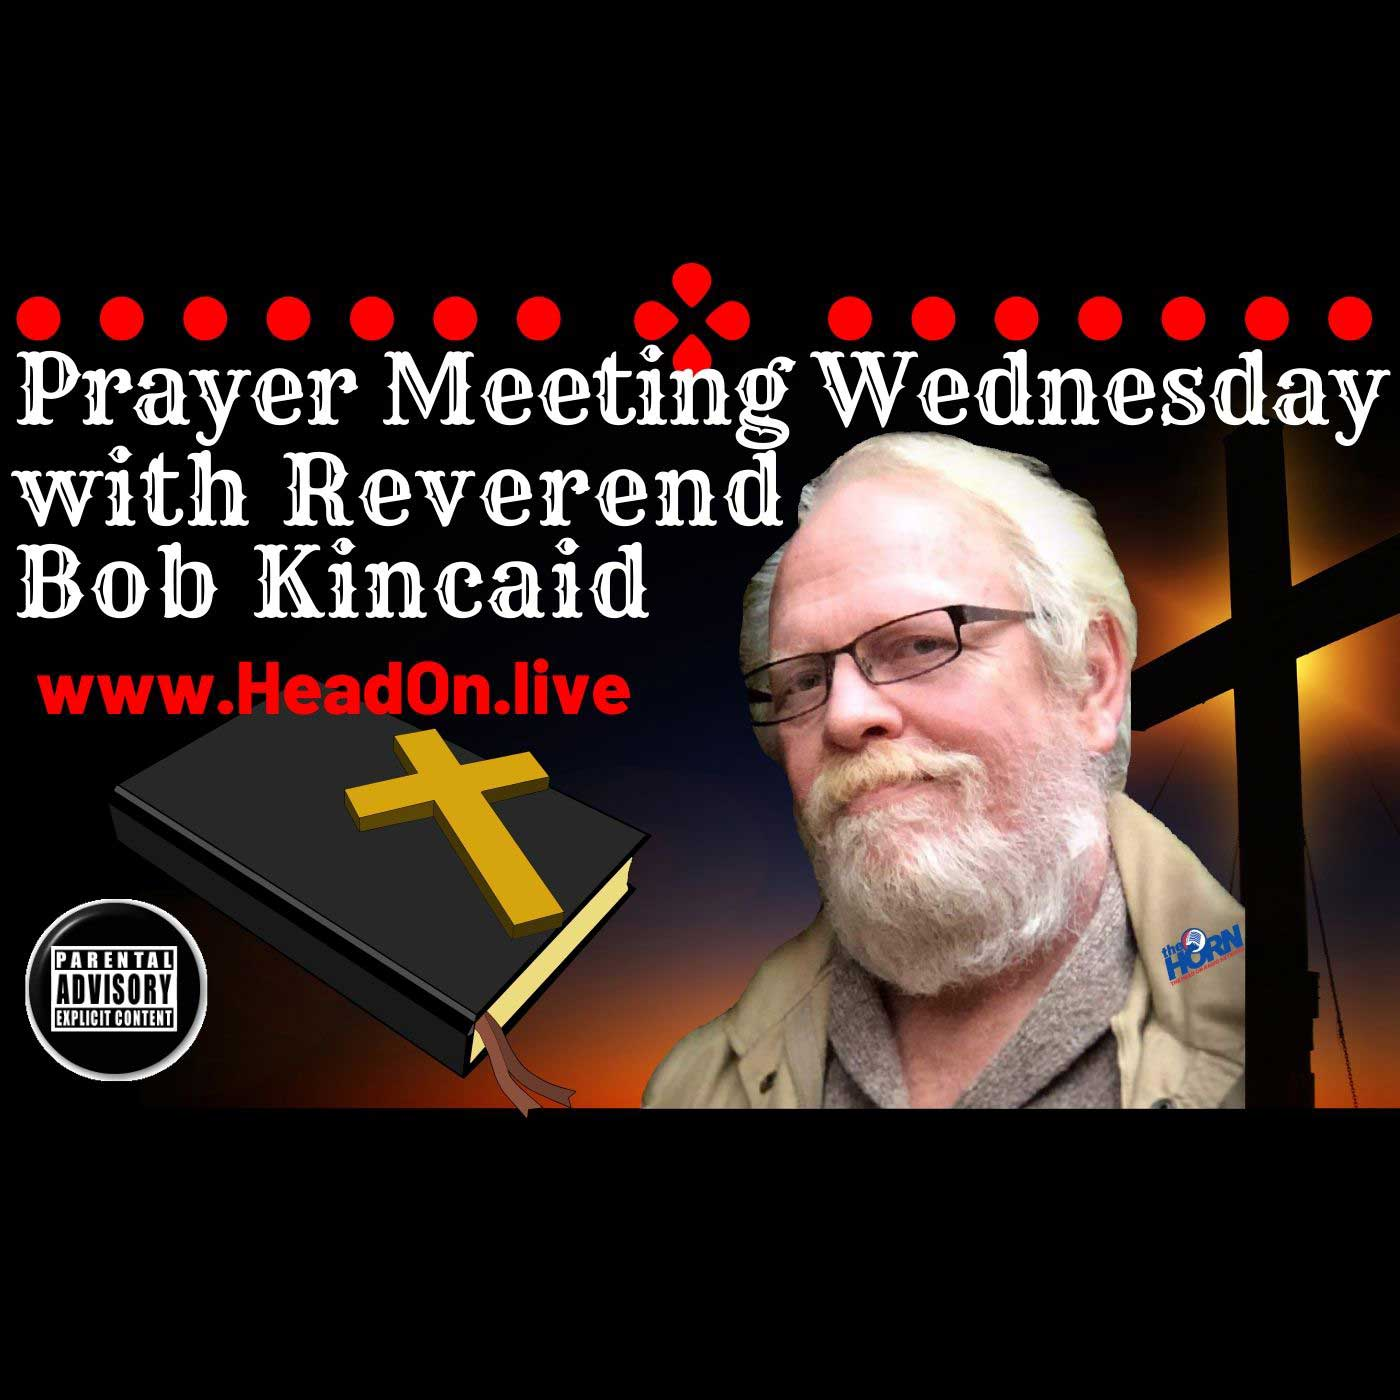 Wednesday 6 February 2019 Prayer Meetin Wednesday Head On With Bob Kincaid 6 February 2019